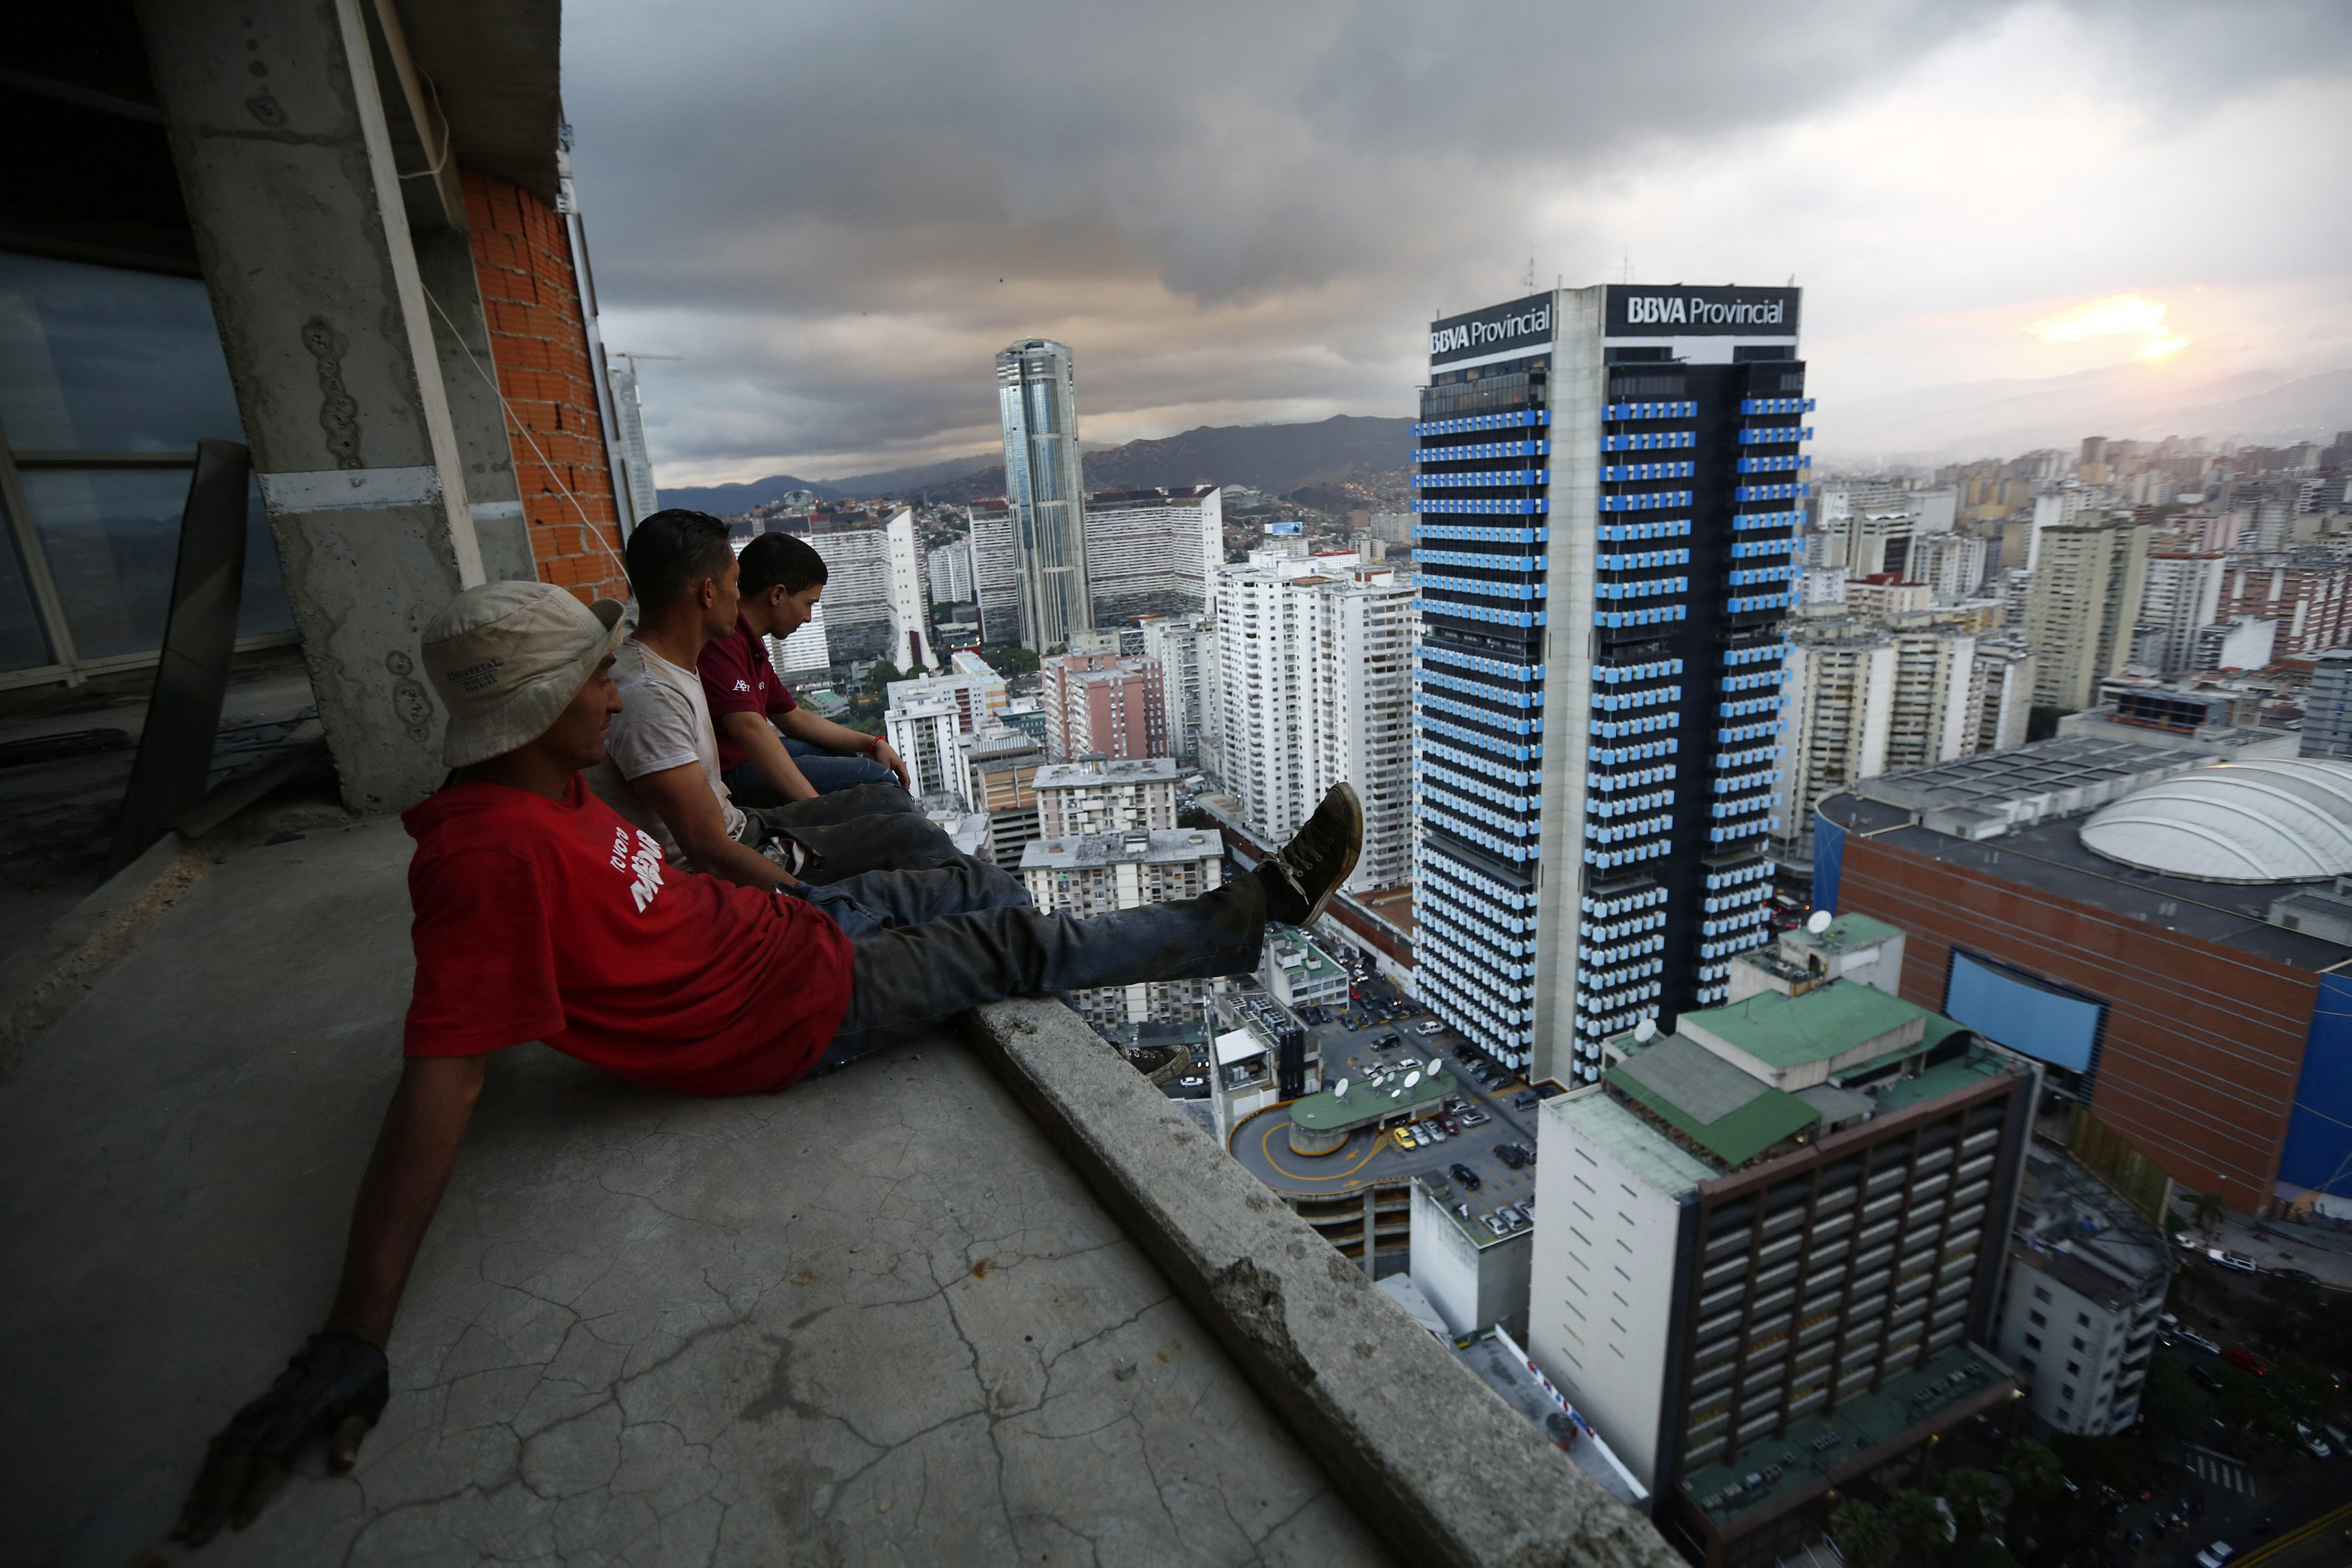 A group of men take in the view of Venezuela's capital after salvaging metal on the 30th floor of the 'Tower of David' in central Caracas on Feb. 3.   REUTERS